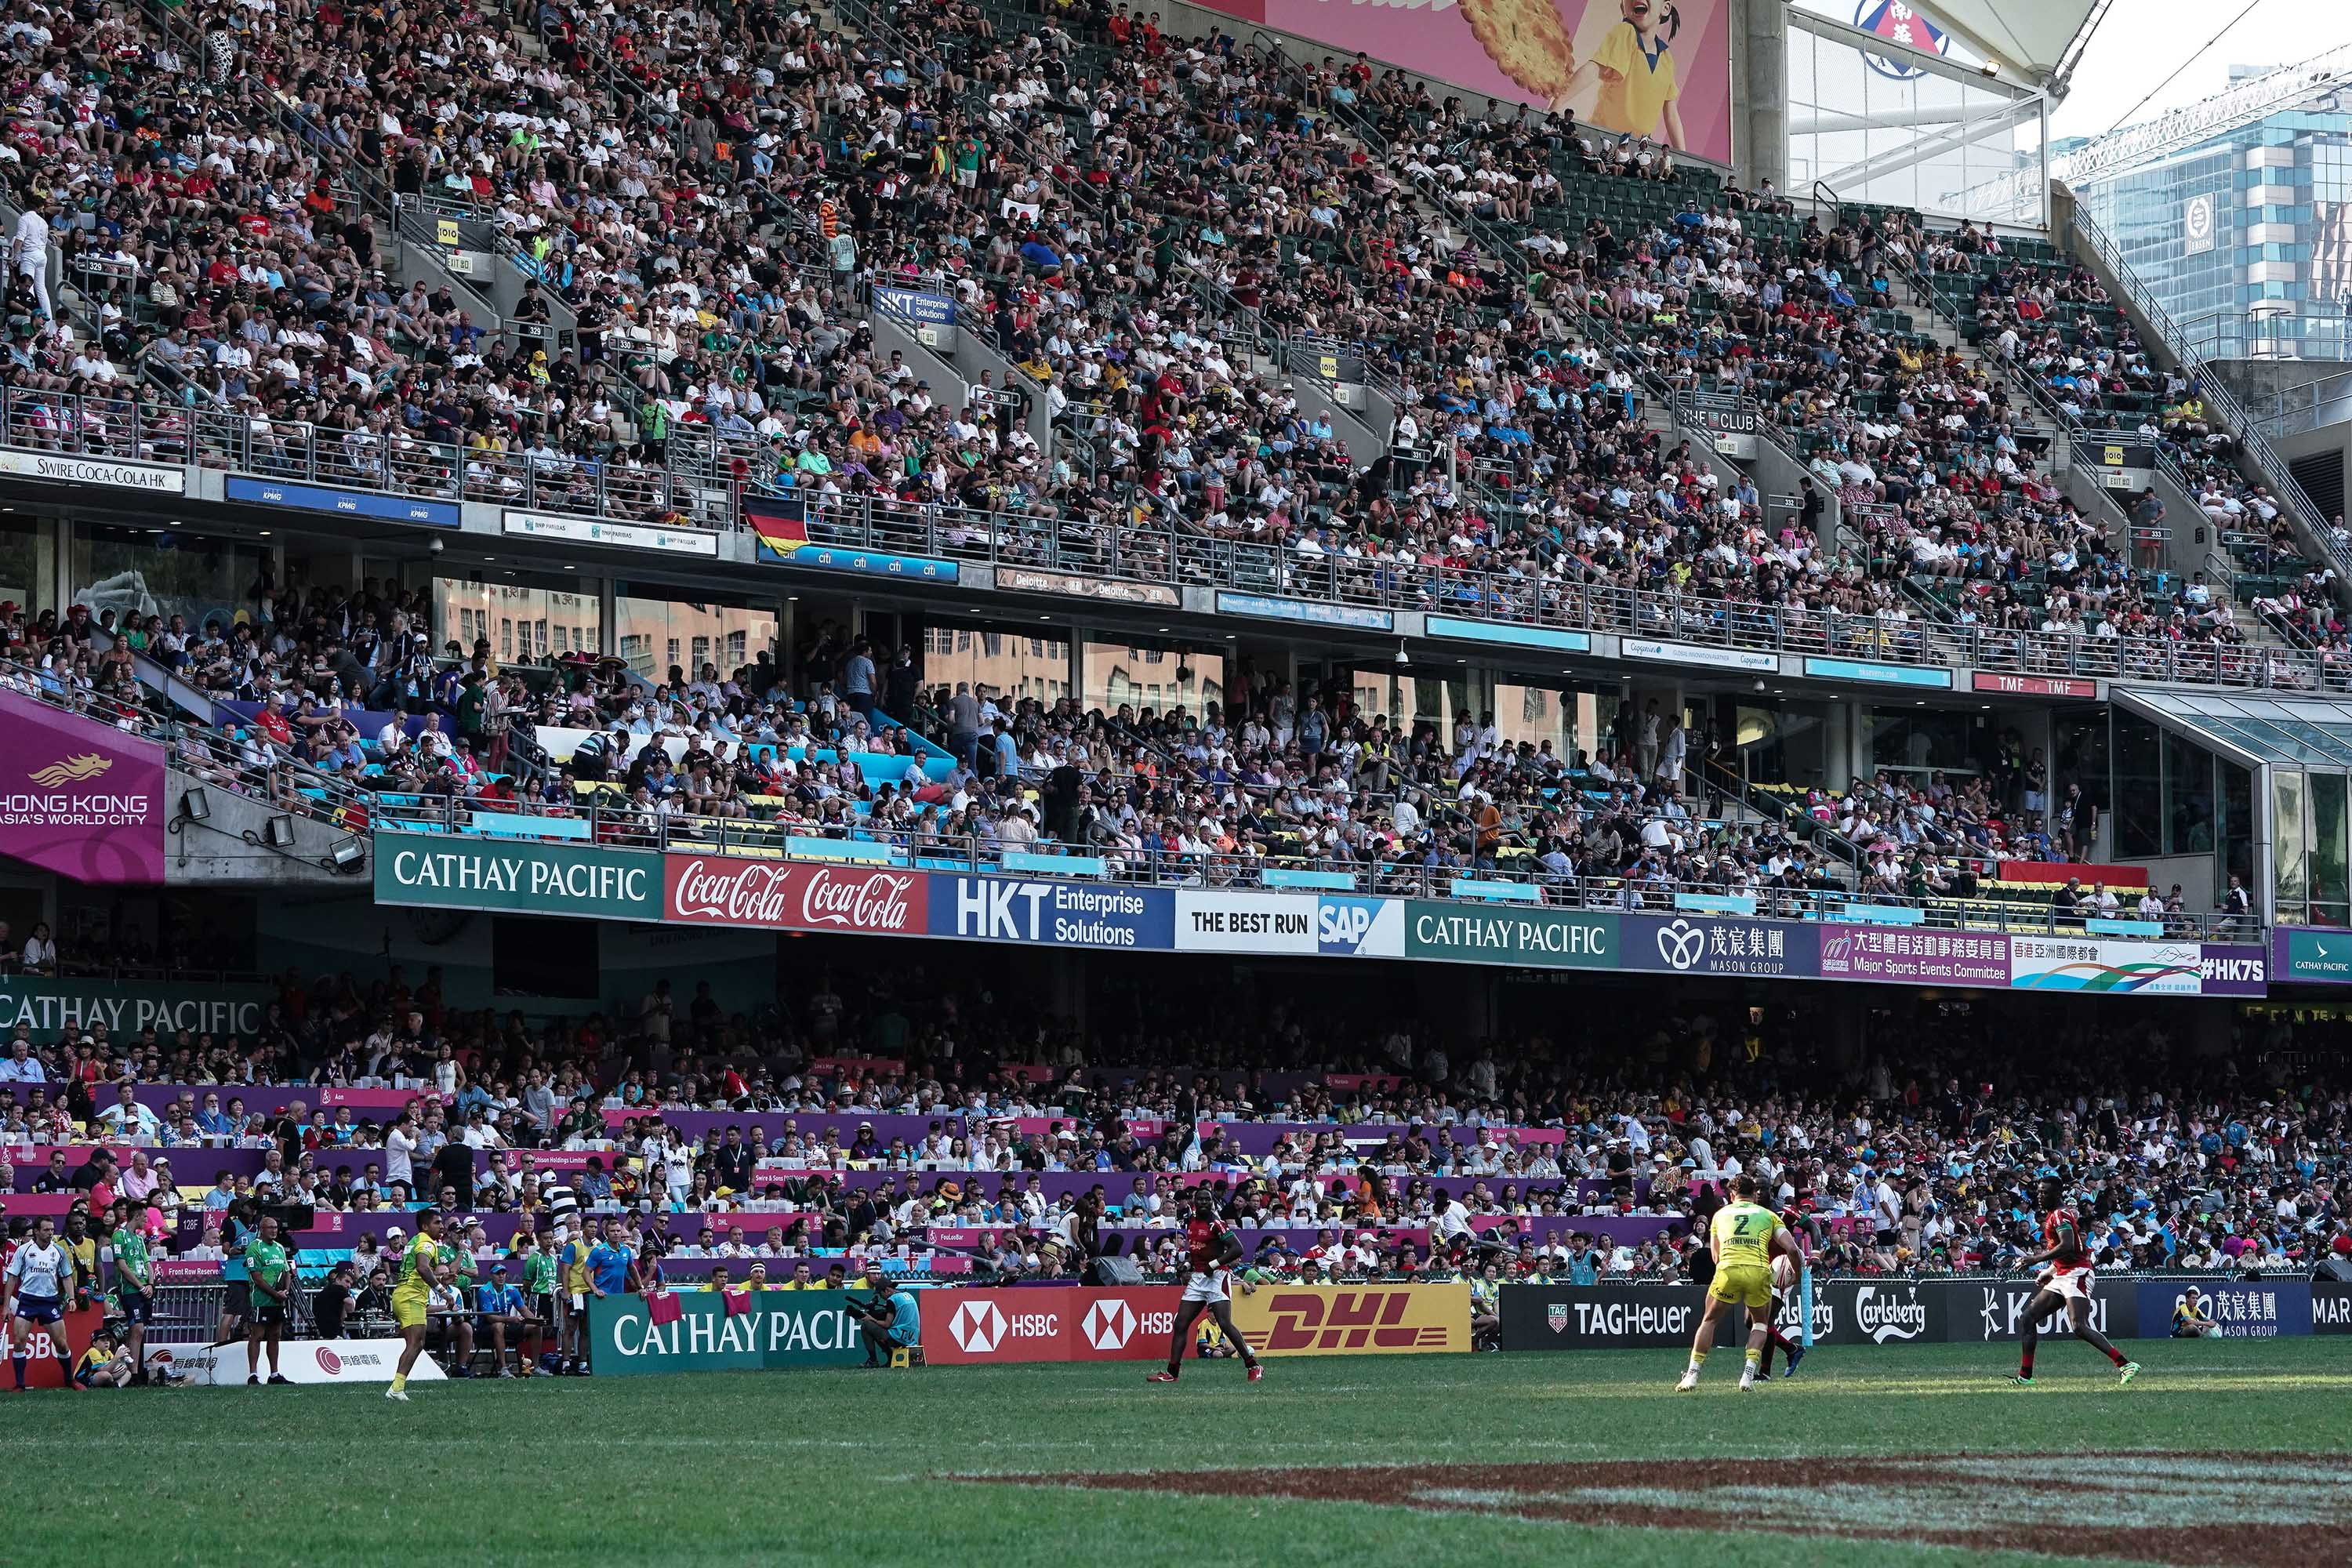 A match between Australia and Kenya is played during the Rugby Sevens in Hong Kong in April 2019.